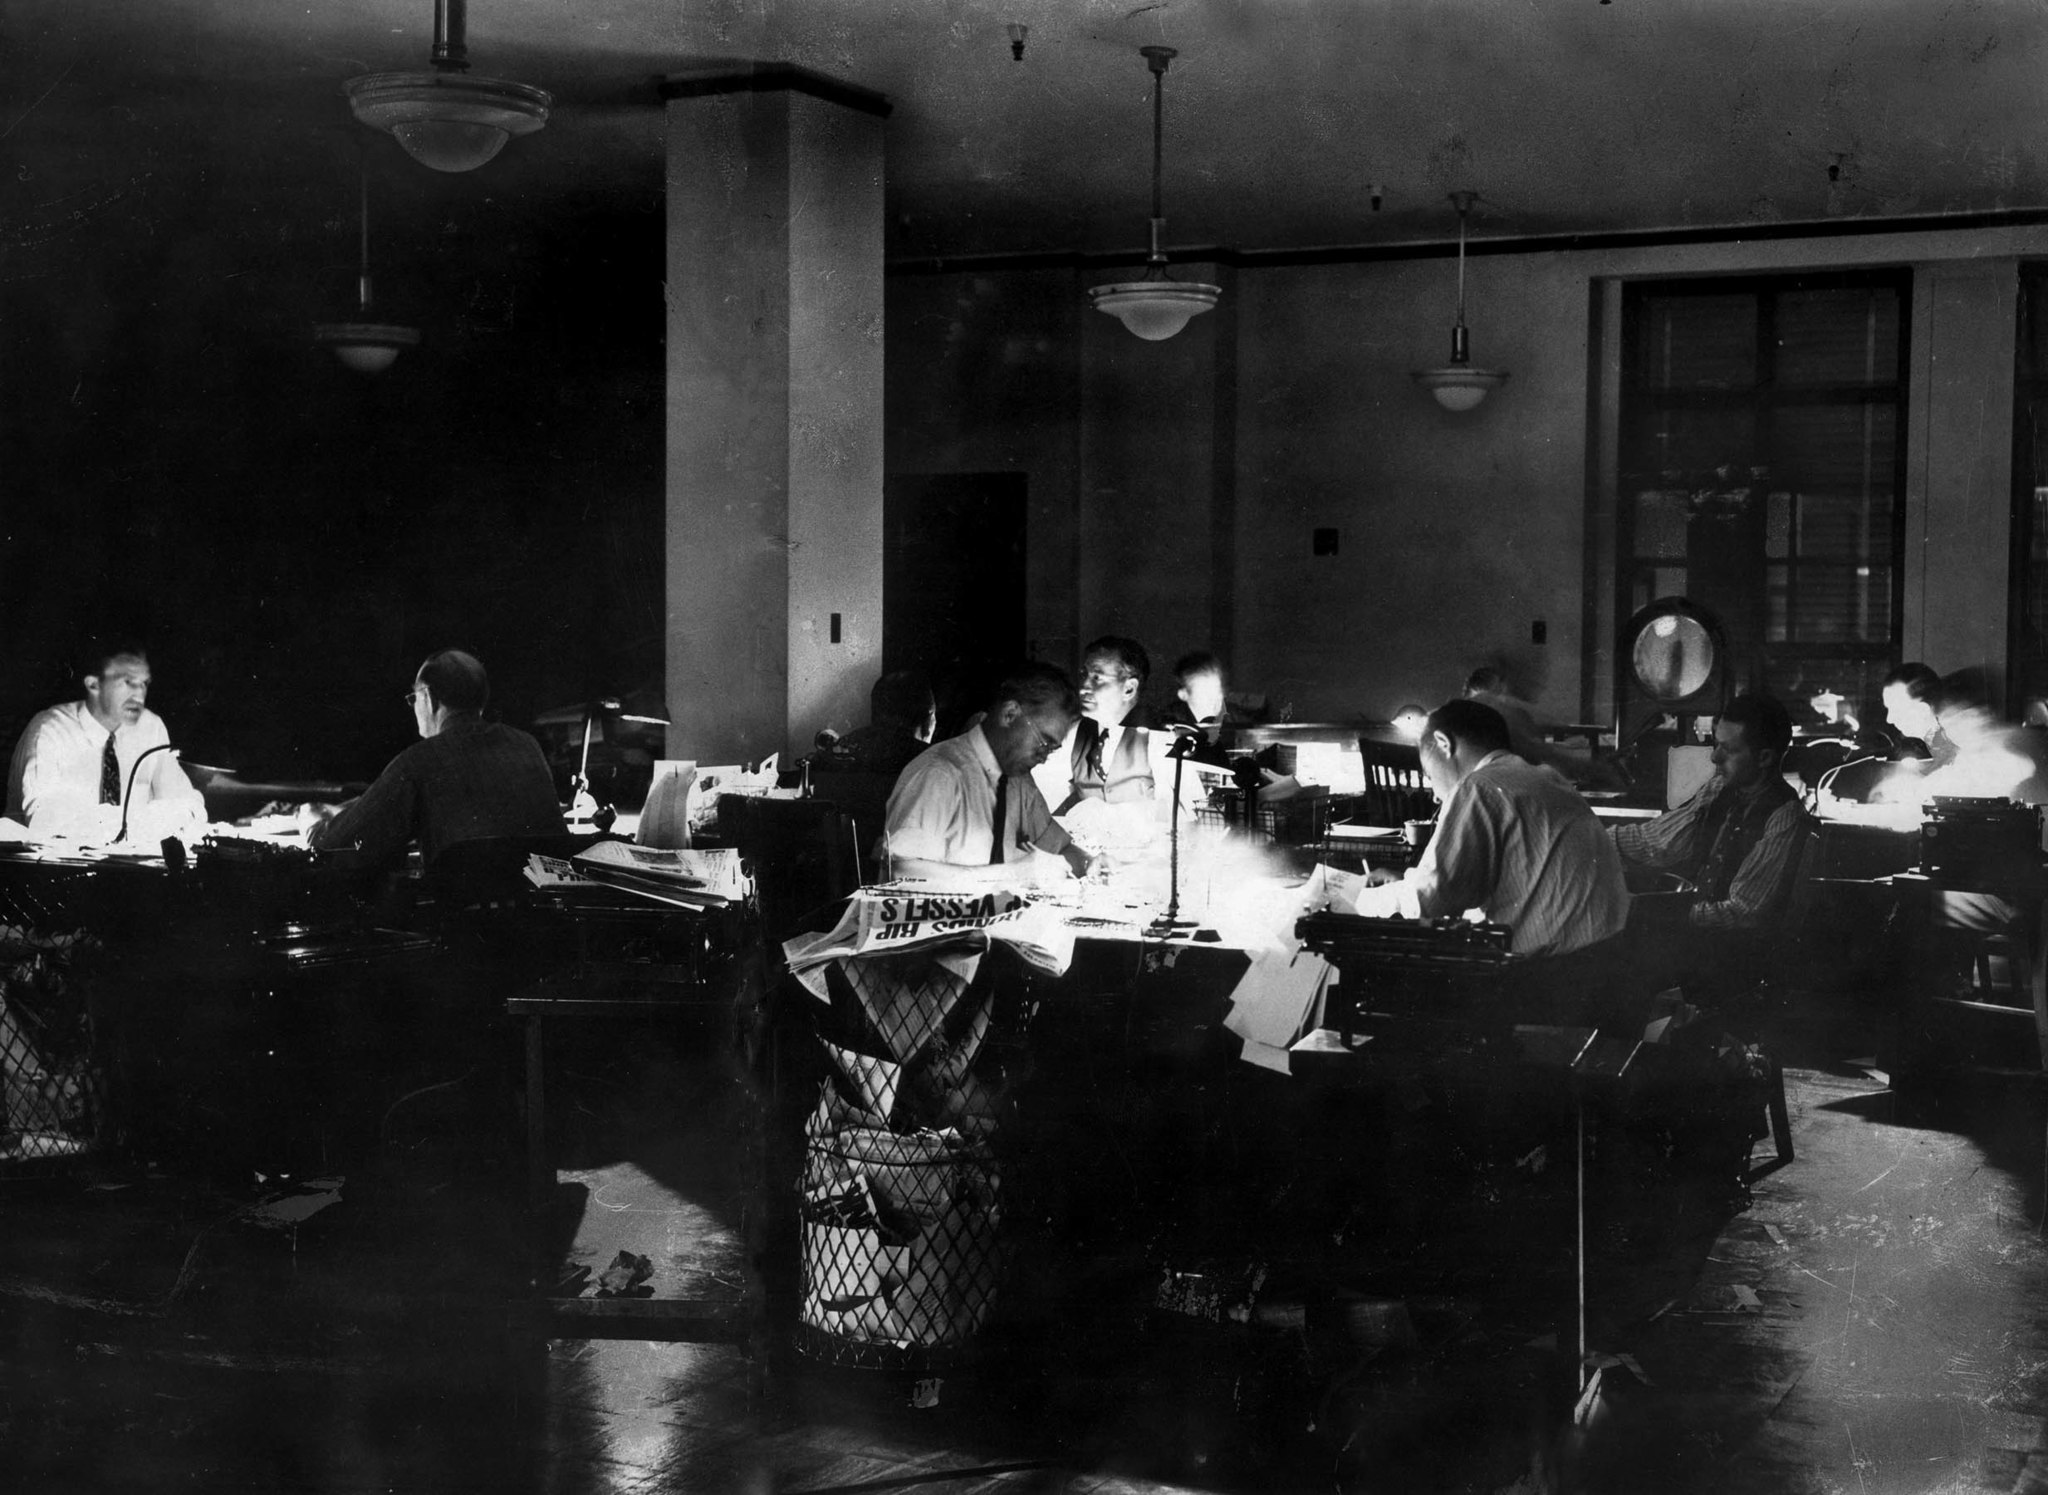 Dec. 10, 1941: During the first World War II blackout in Los Angeles, editors in the Times city room